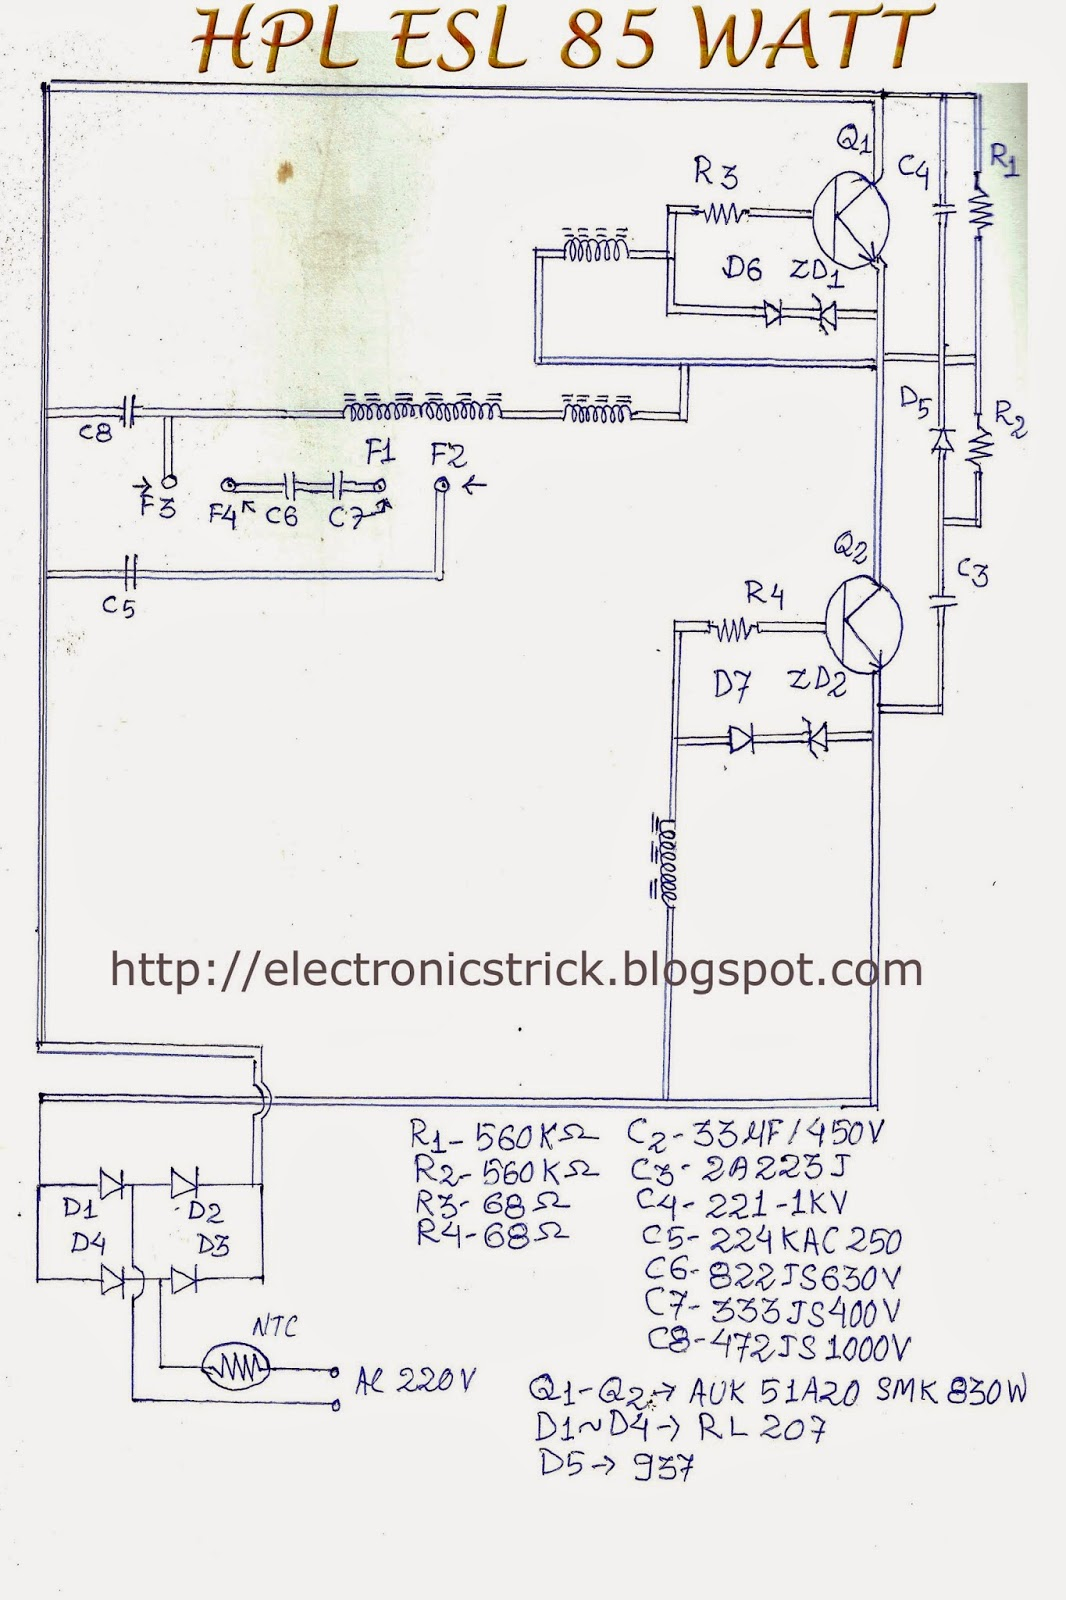 Hcl Esl 85 Watt Cfl Bulb Ckt Diagram Tips And Trick Electronic CFL Light  Output 18 W Cfl Circuit Diagram